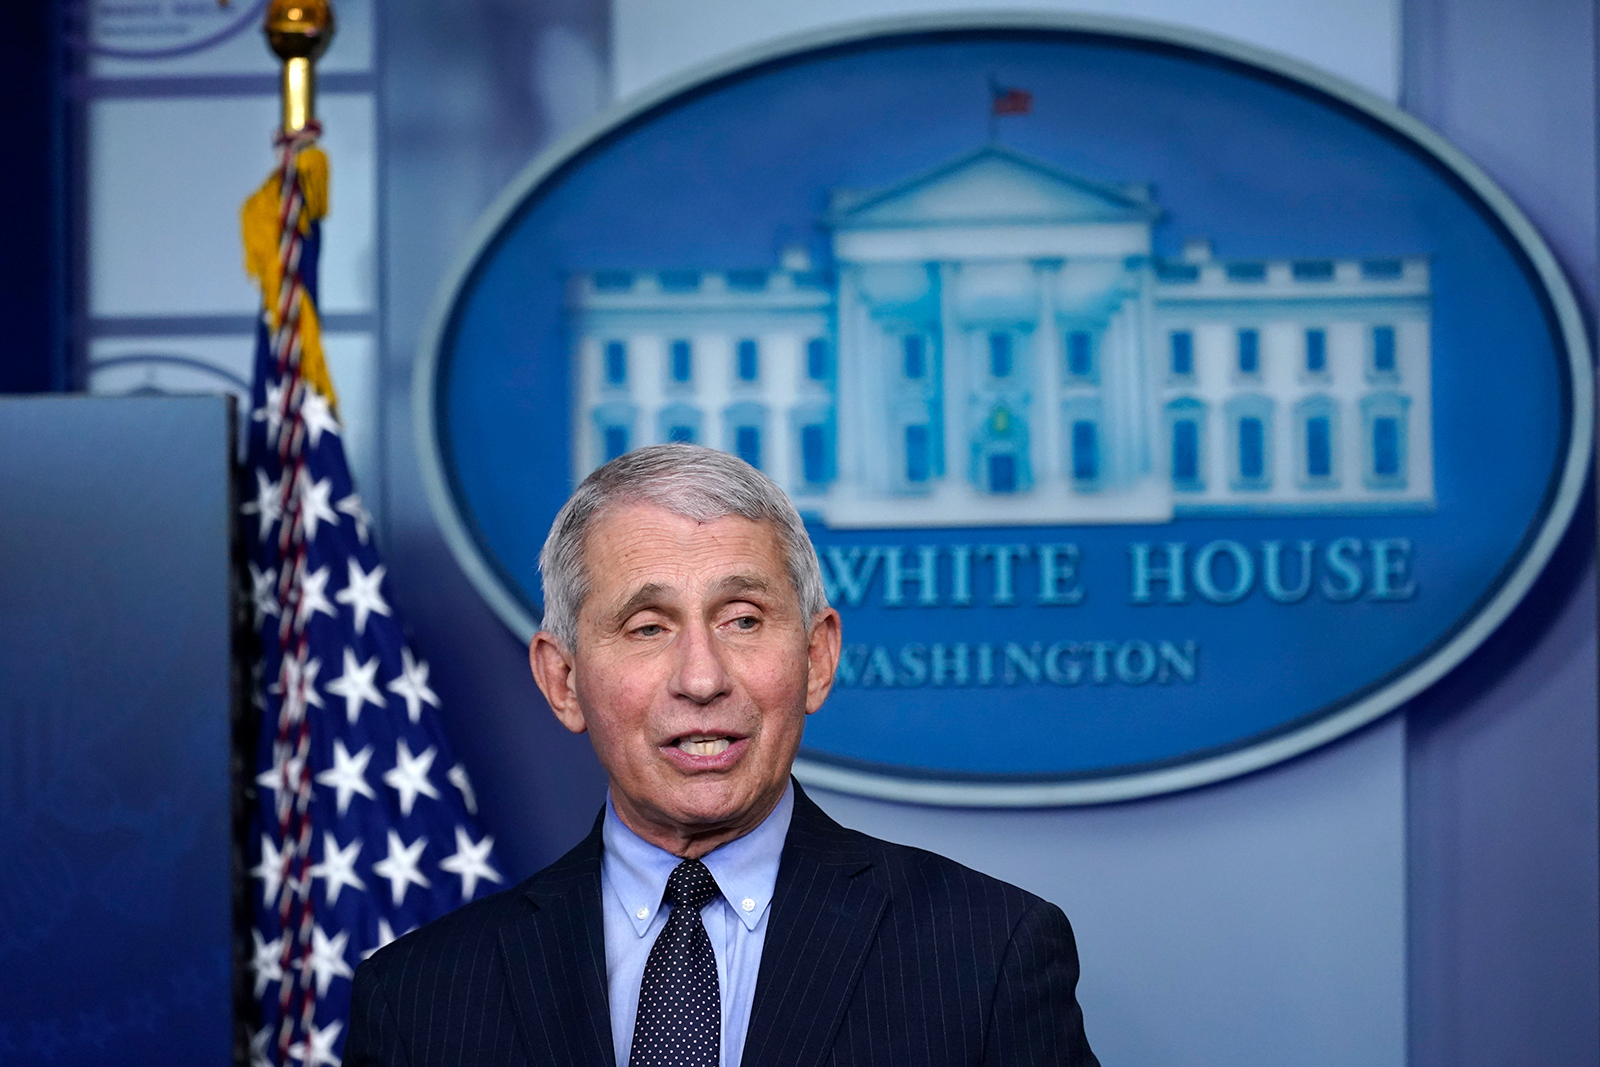 Dr. Anthony Fauci, director of the National Institute of Allergy and Infectious Diseases, speaks with reporters at the White House, in Washington, DC, on January 21.